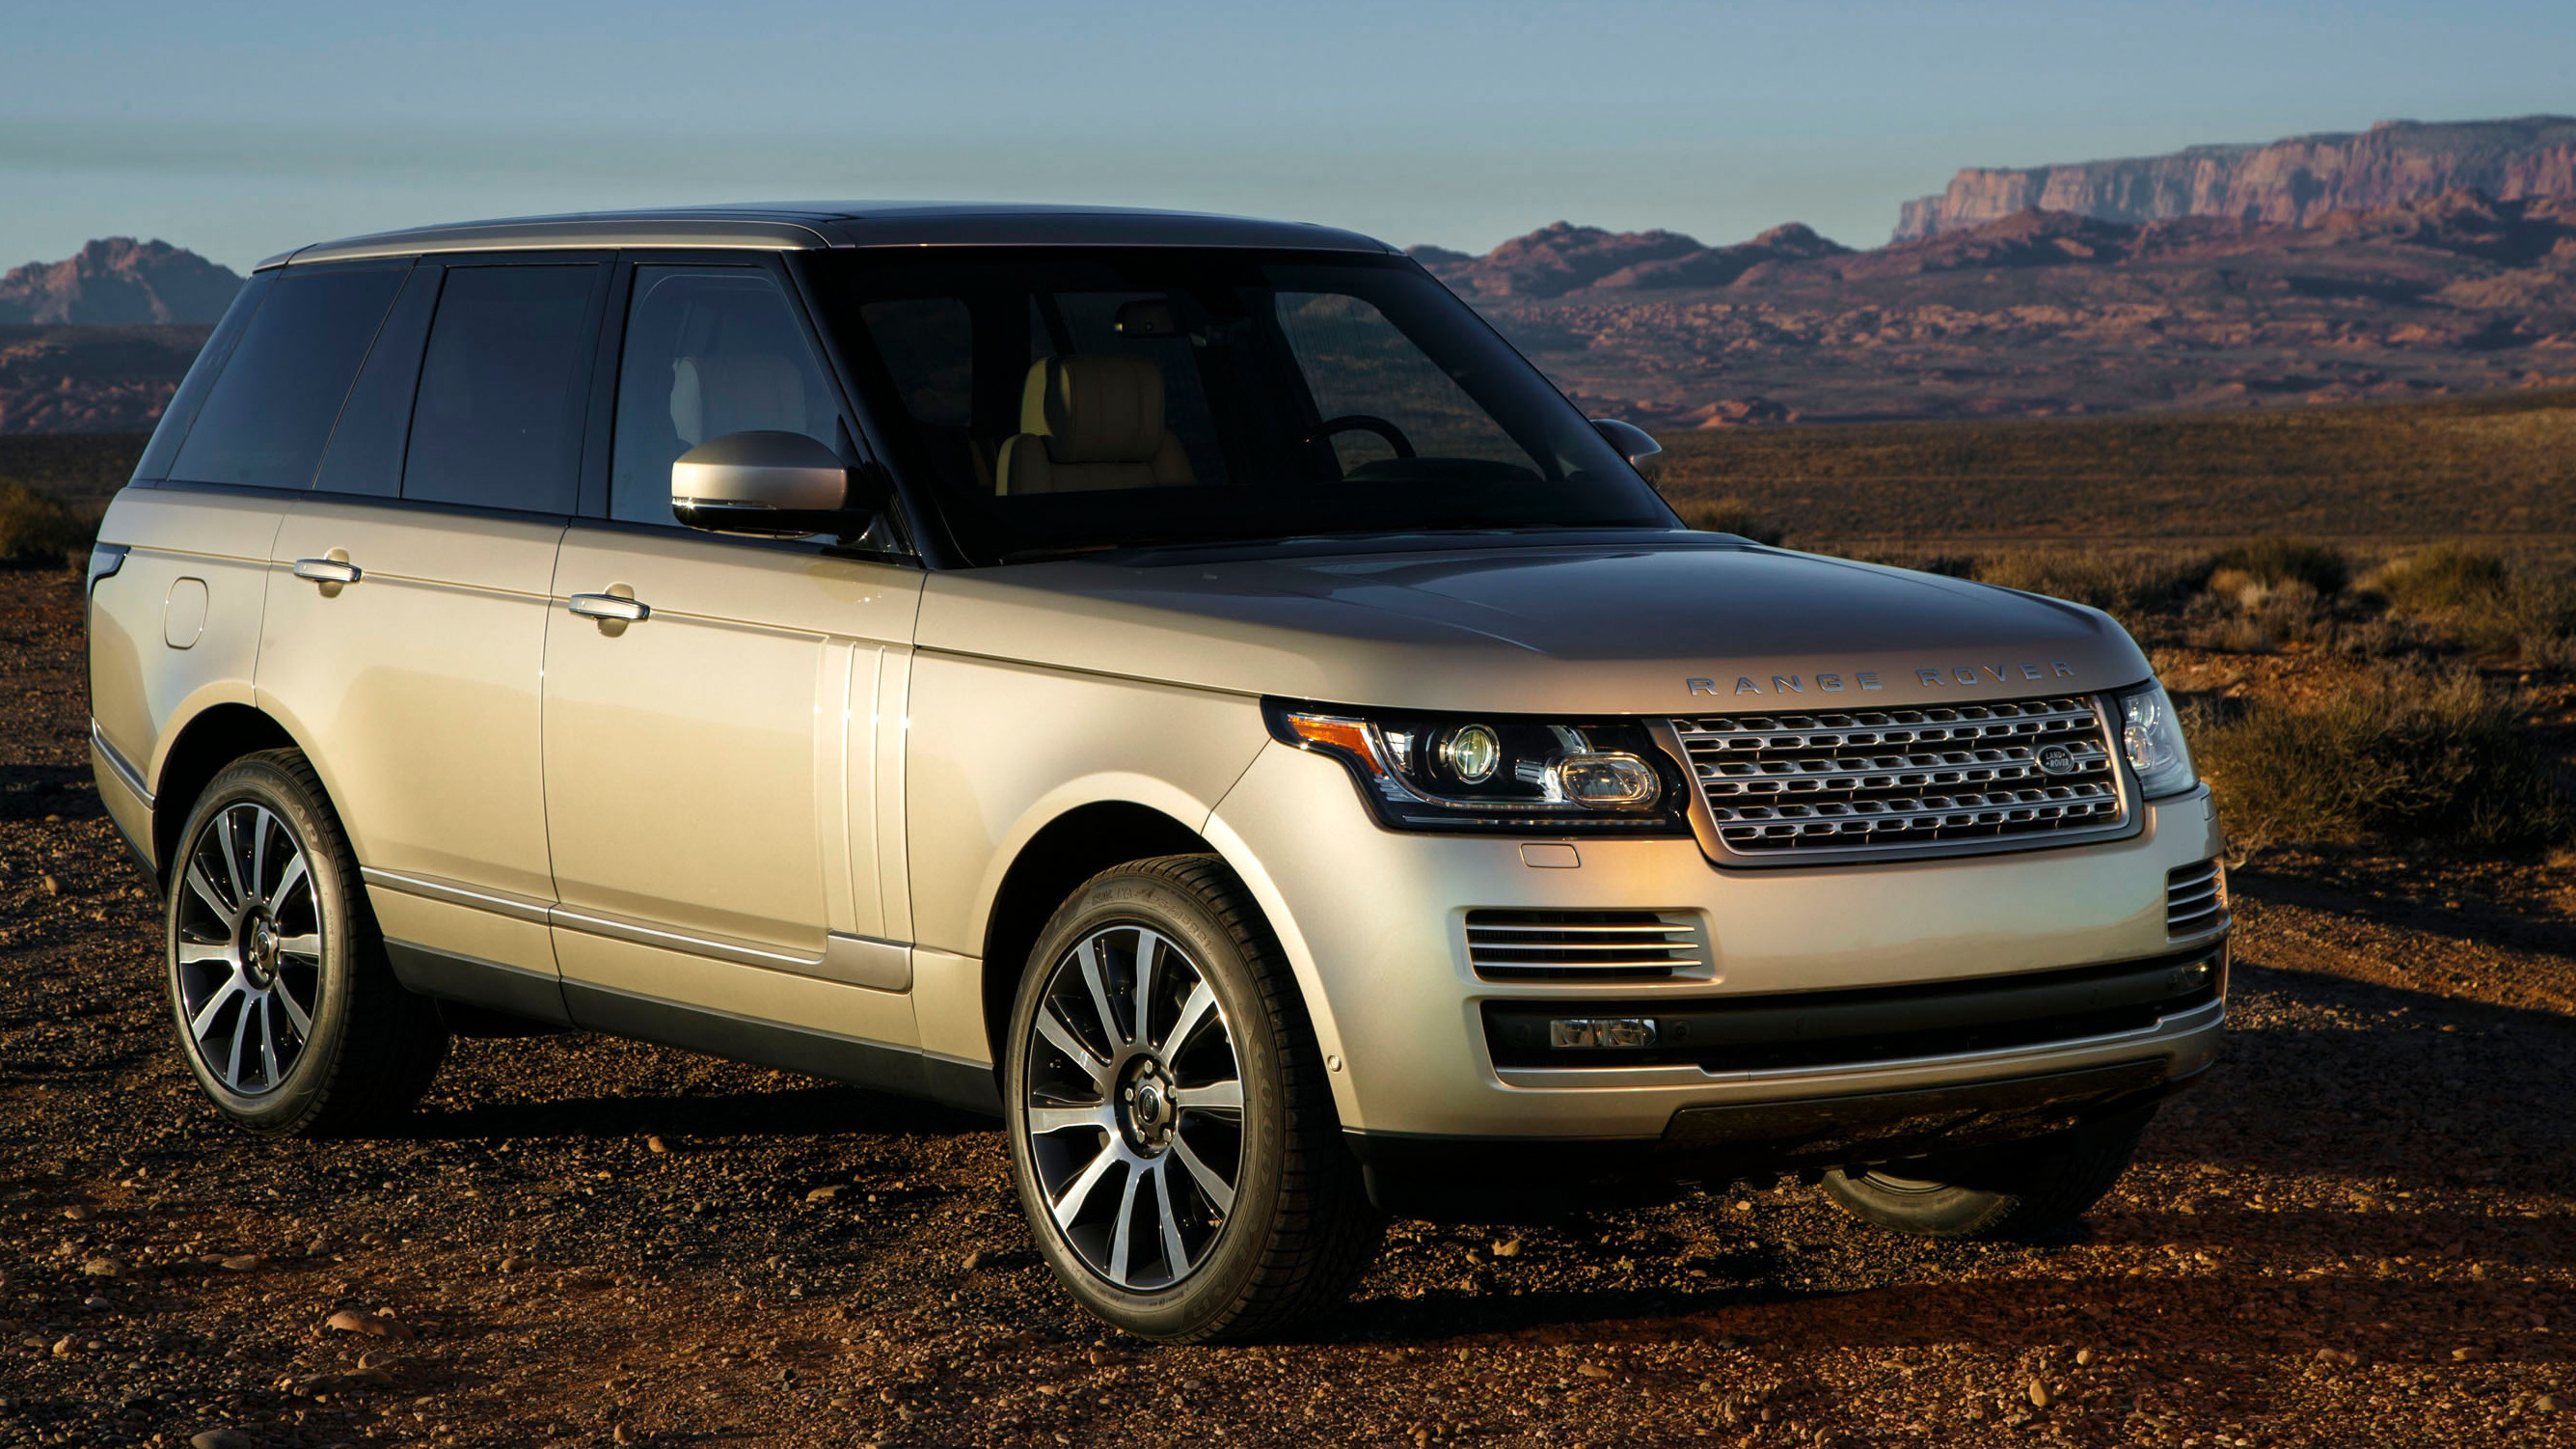 medium resolution of land rover recalls 65 000 vehicles over unlatching doors